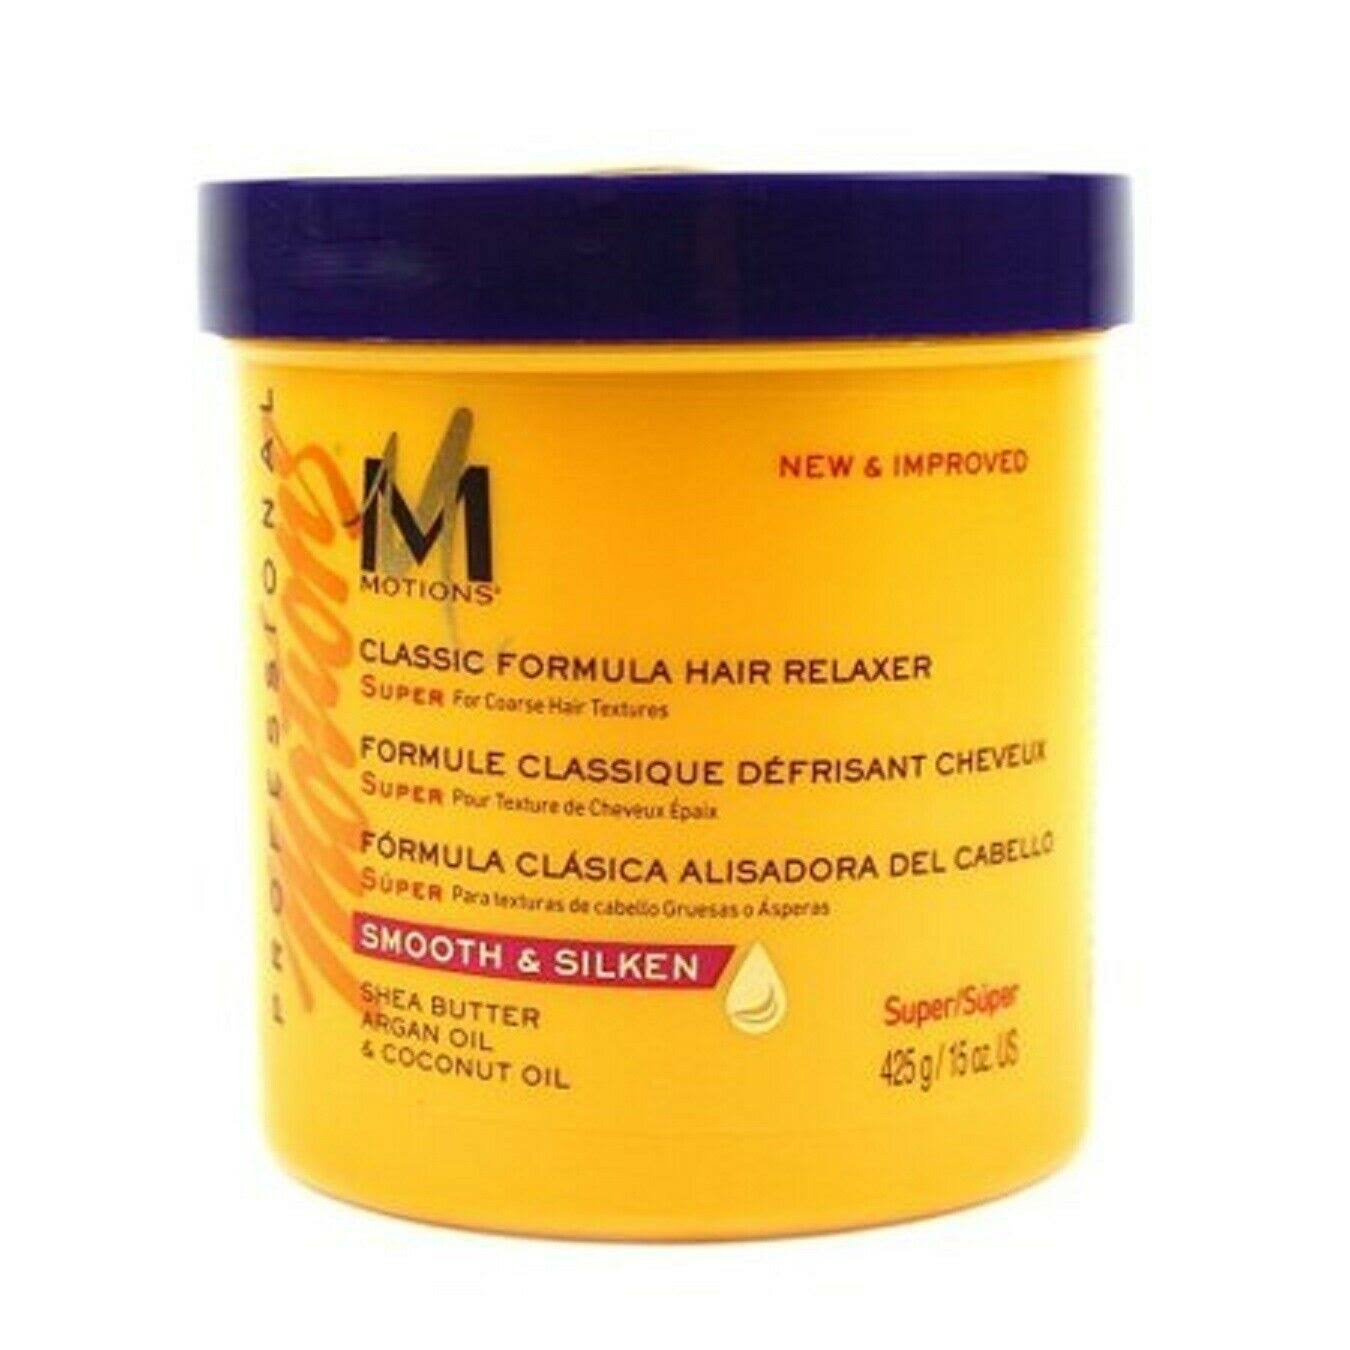 Motions Hair Relaxer Super 15 oz